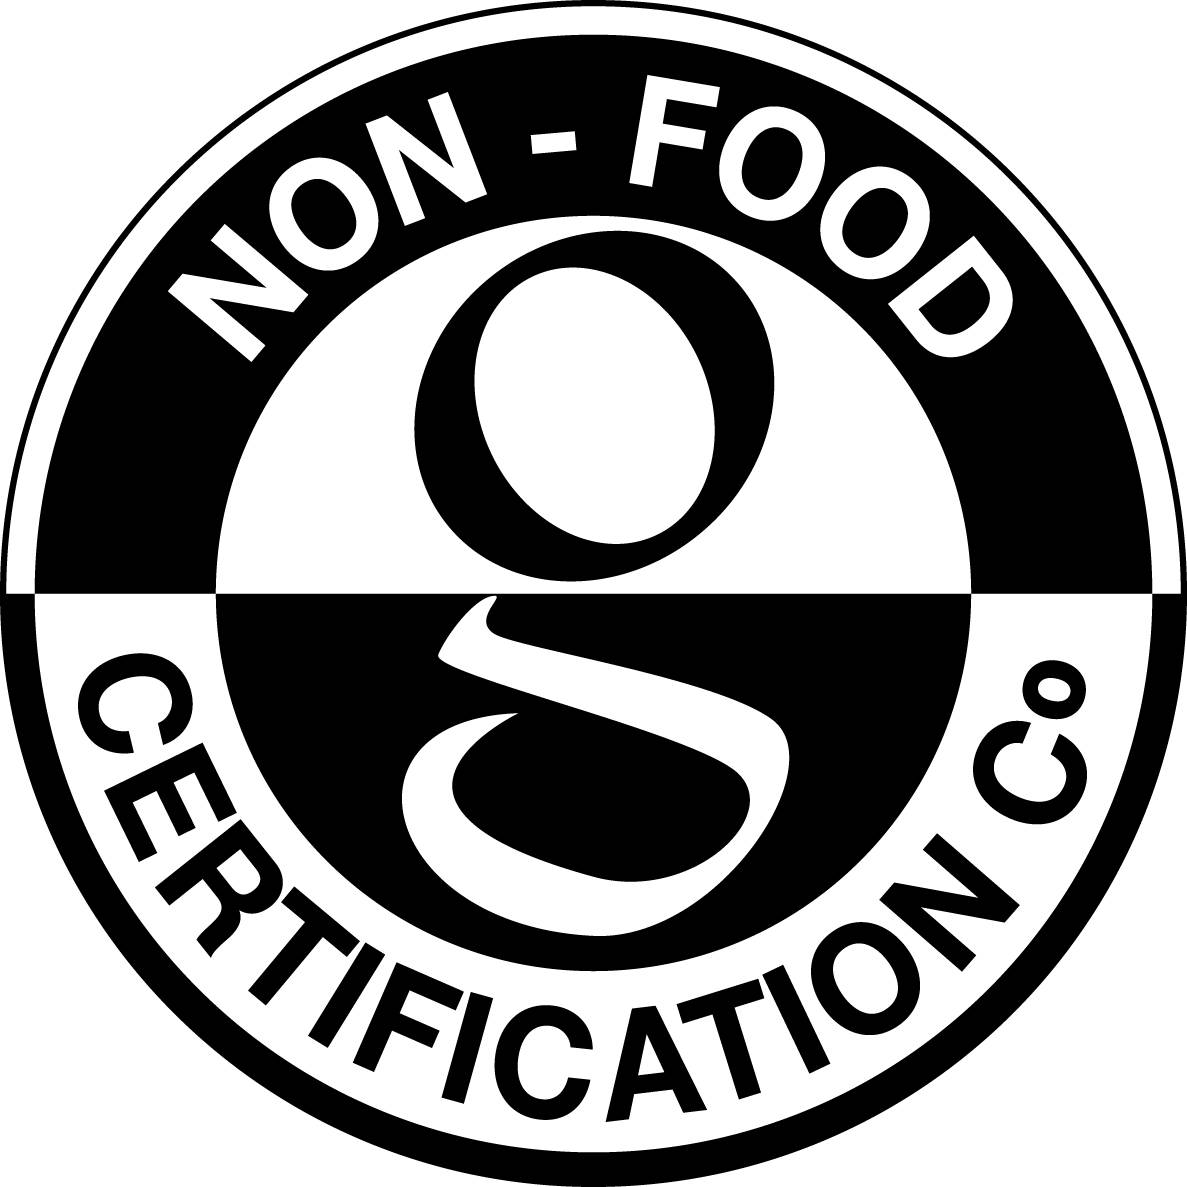 organic certified organic non-food certification skincare skin cosmetic products beauty vegan cruelty free sustainable eco friendly bio degradable recyclable packaging facial creams moisturiser day cream night cream collagen anti ageing all skin types hydrate blemishes reiki reiki infused antioxidants waterless skincare